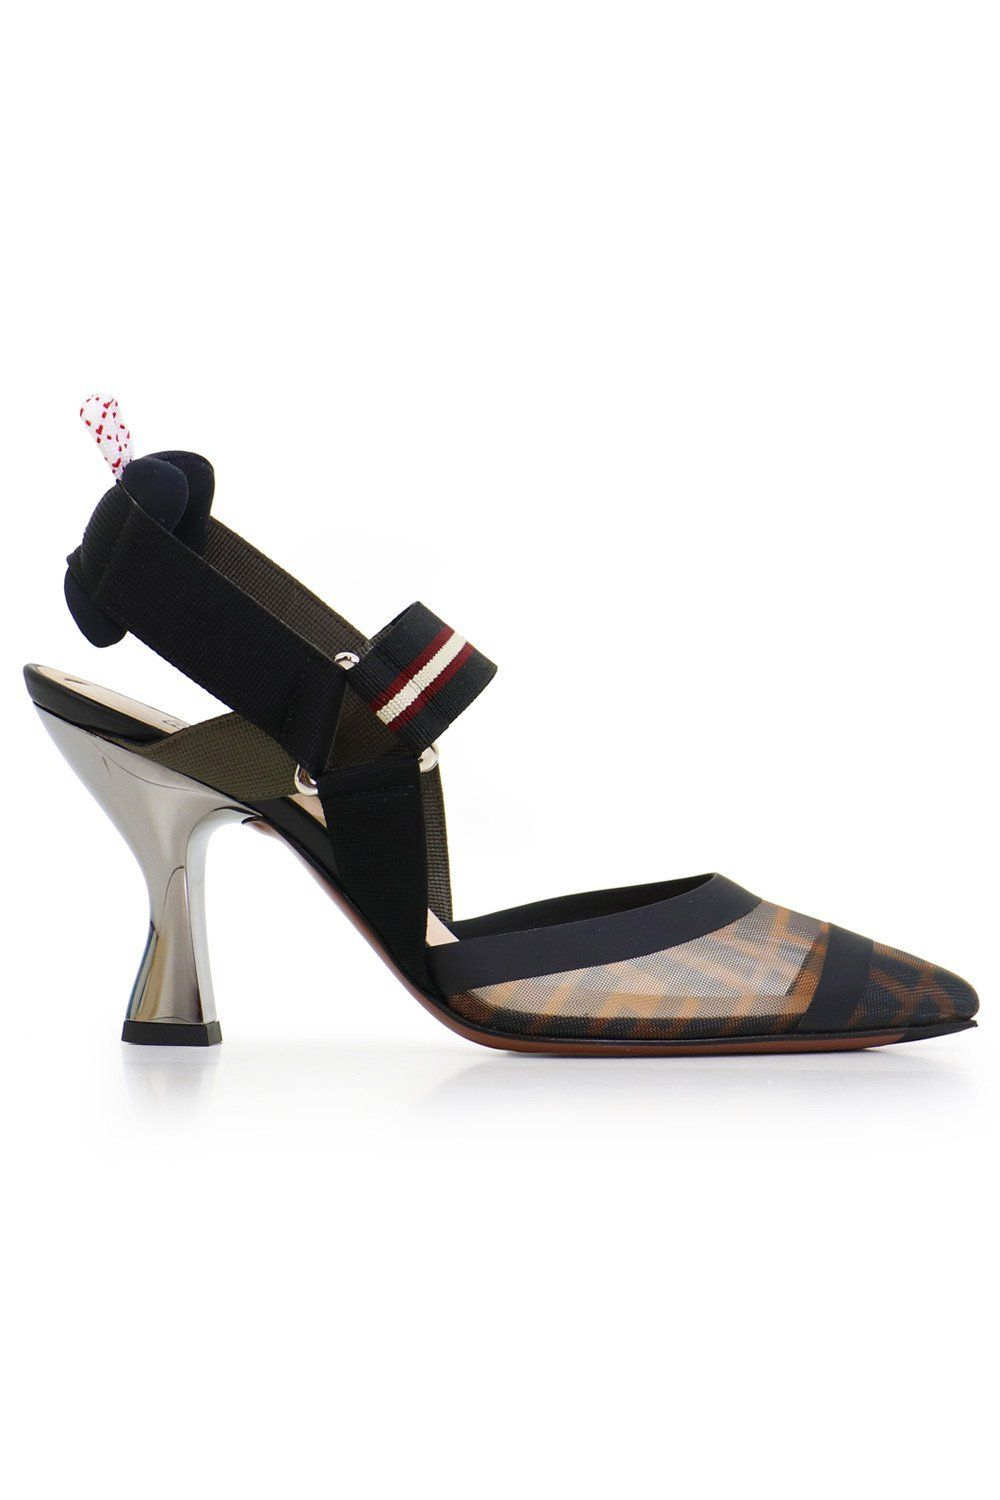 ed29ed7141c The Fendi FF Logo Slingback is crafted in Italy with the FF logo print. The